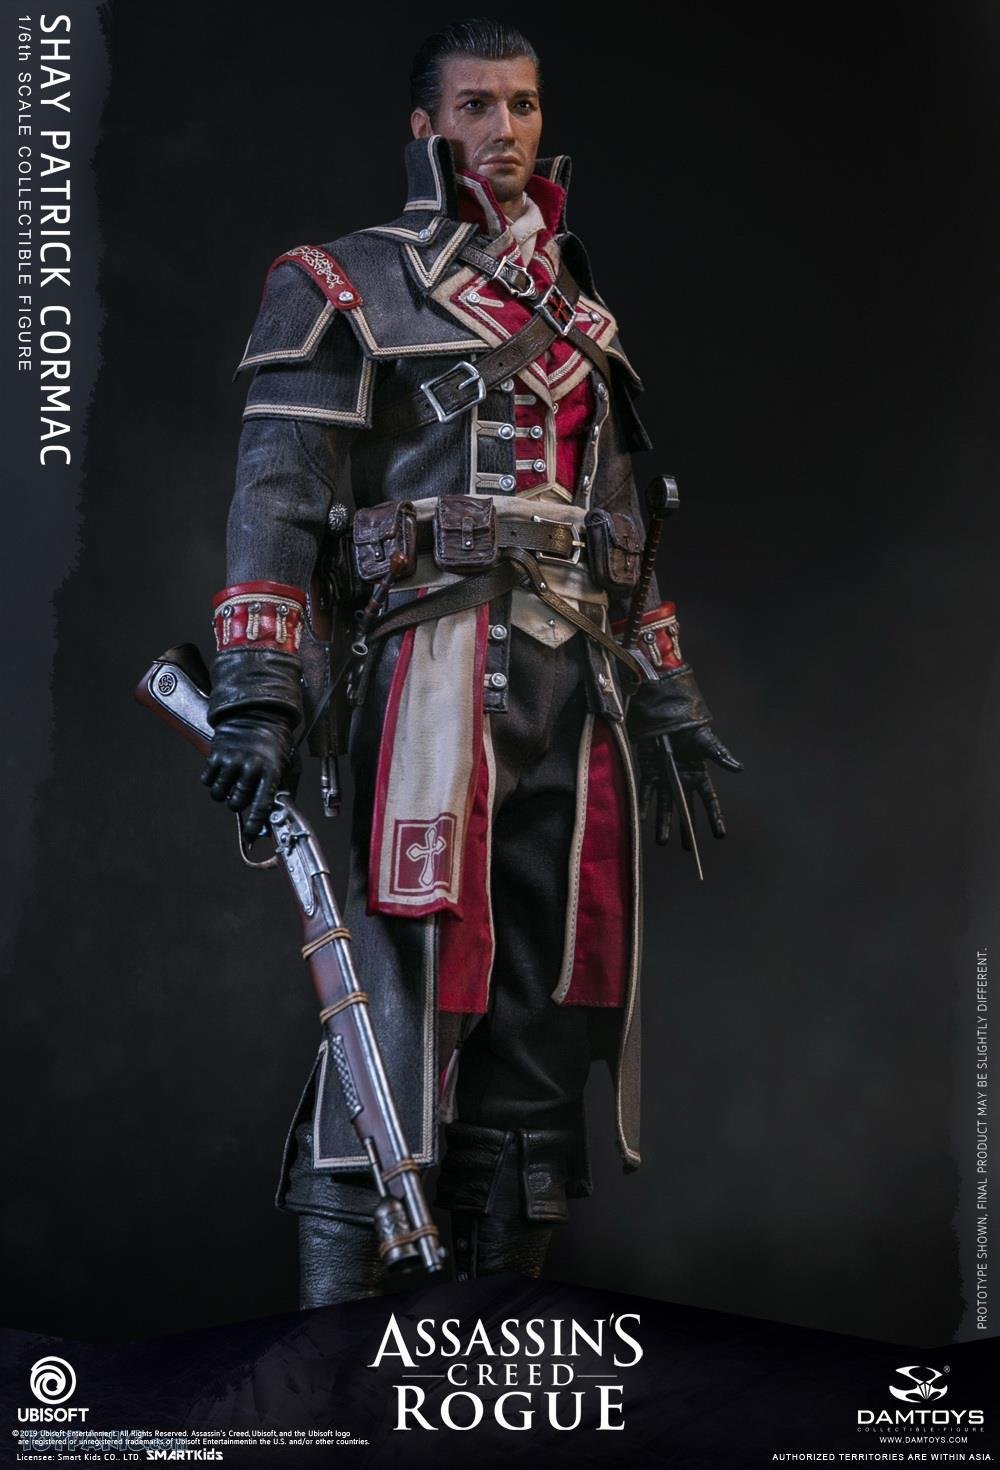 male - NEW PRODUCT: DAMTOYS: Assassins Creed Rogue - 1/6th scale Shay Patrick Cormac Collectible Figure 82220123